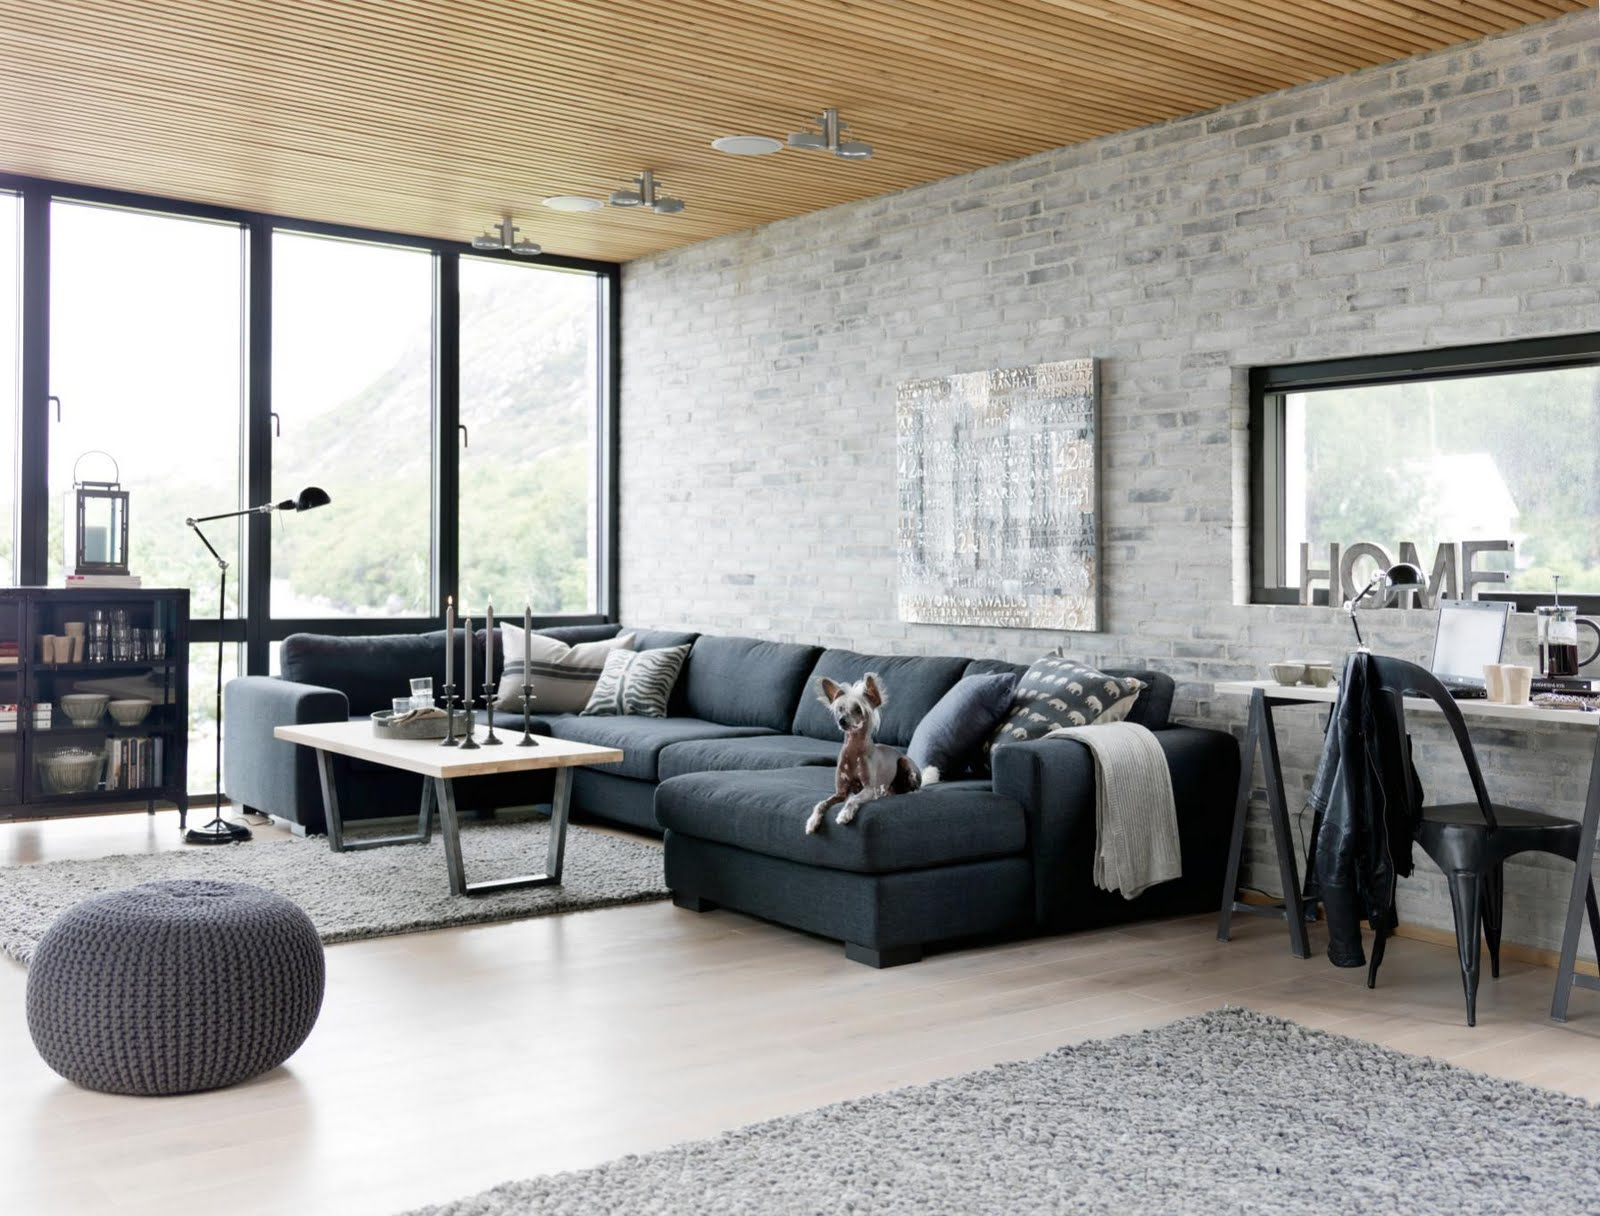 Exquisite-Industrial-Living-room-furniture